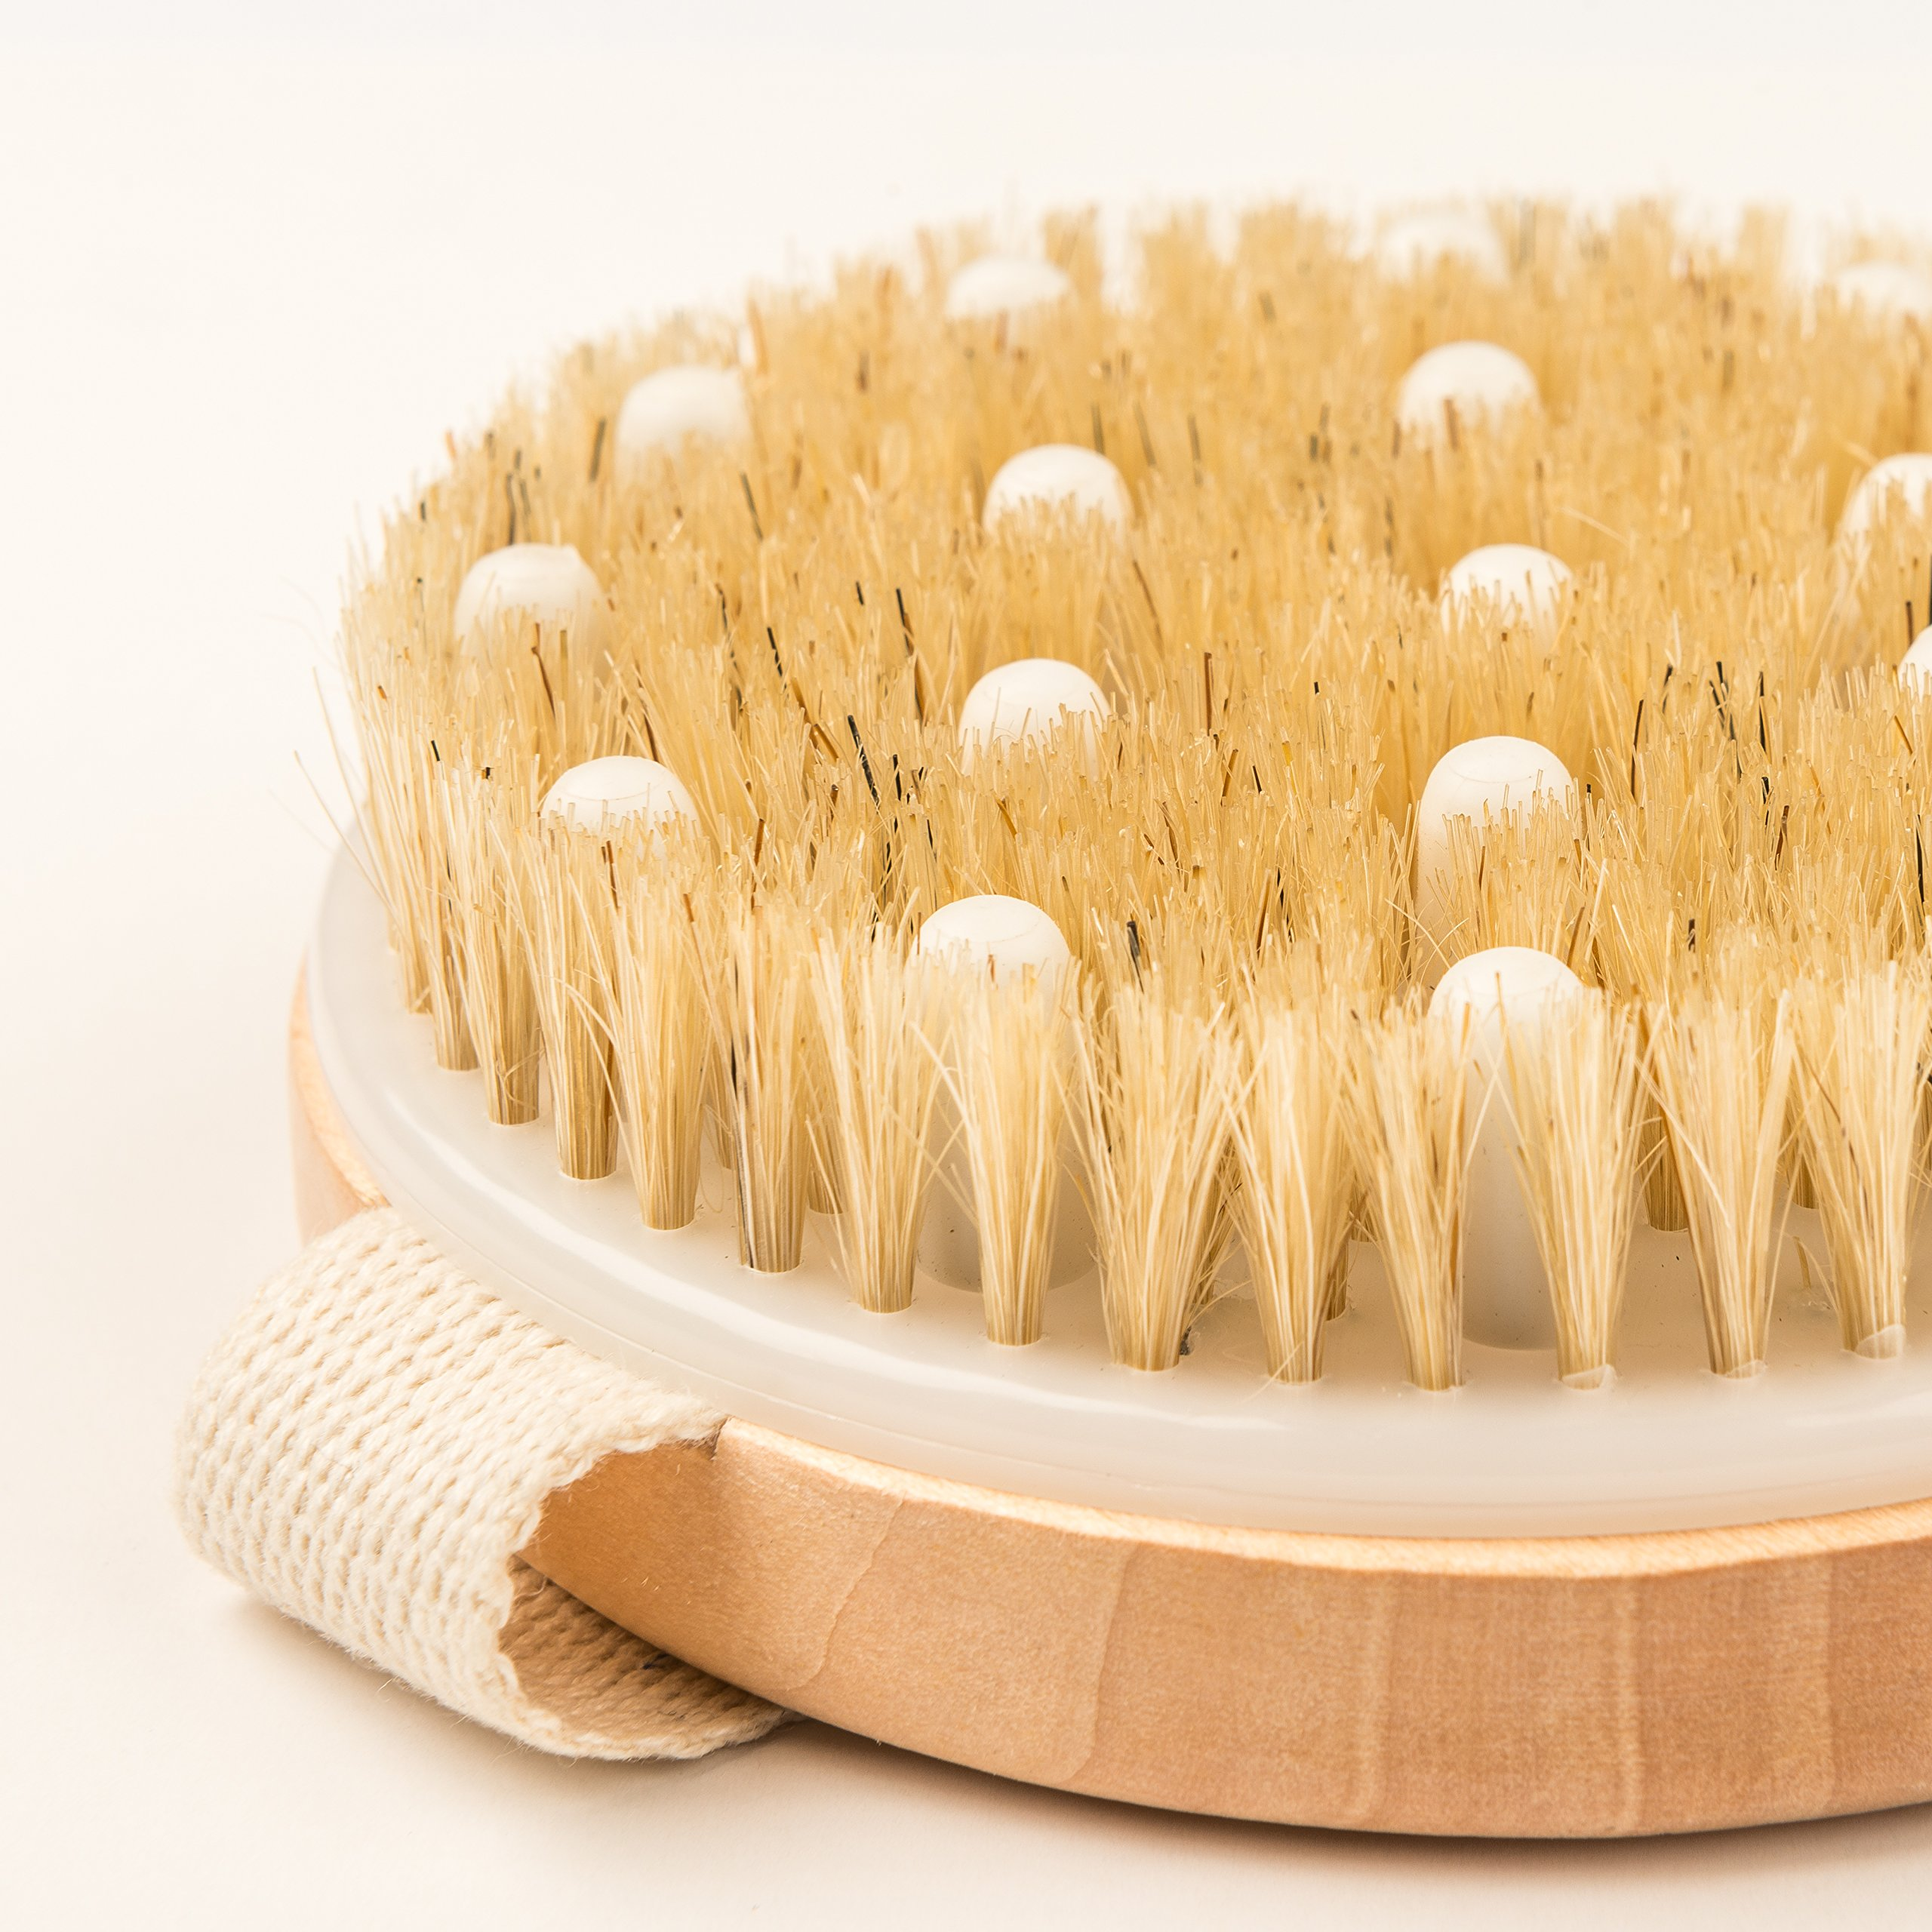 Dry Brushing Body Brush - Best for Exfoliating Dry Skin, Lymphatic Drainage and Cellulite Treatment - Organic Spa Exfoliation and Massage Scrub Brush with Natural Boar Bristles by Rosena (Image #8)